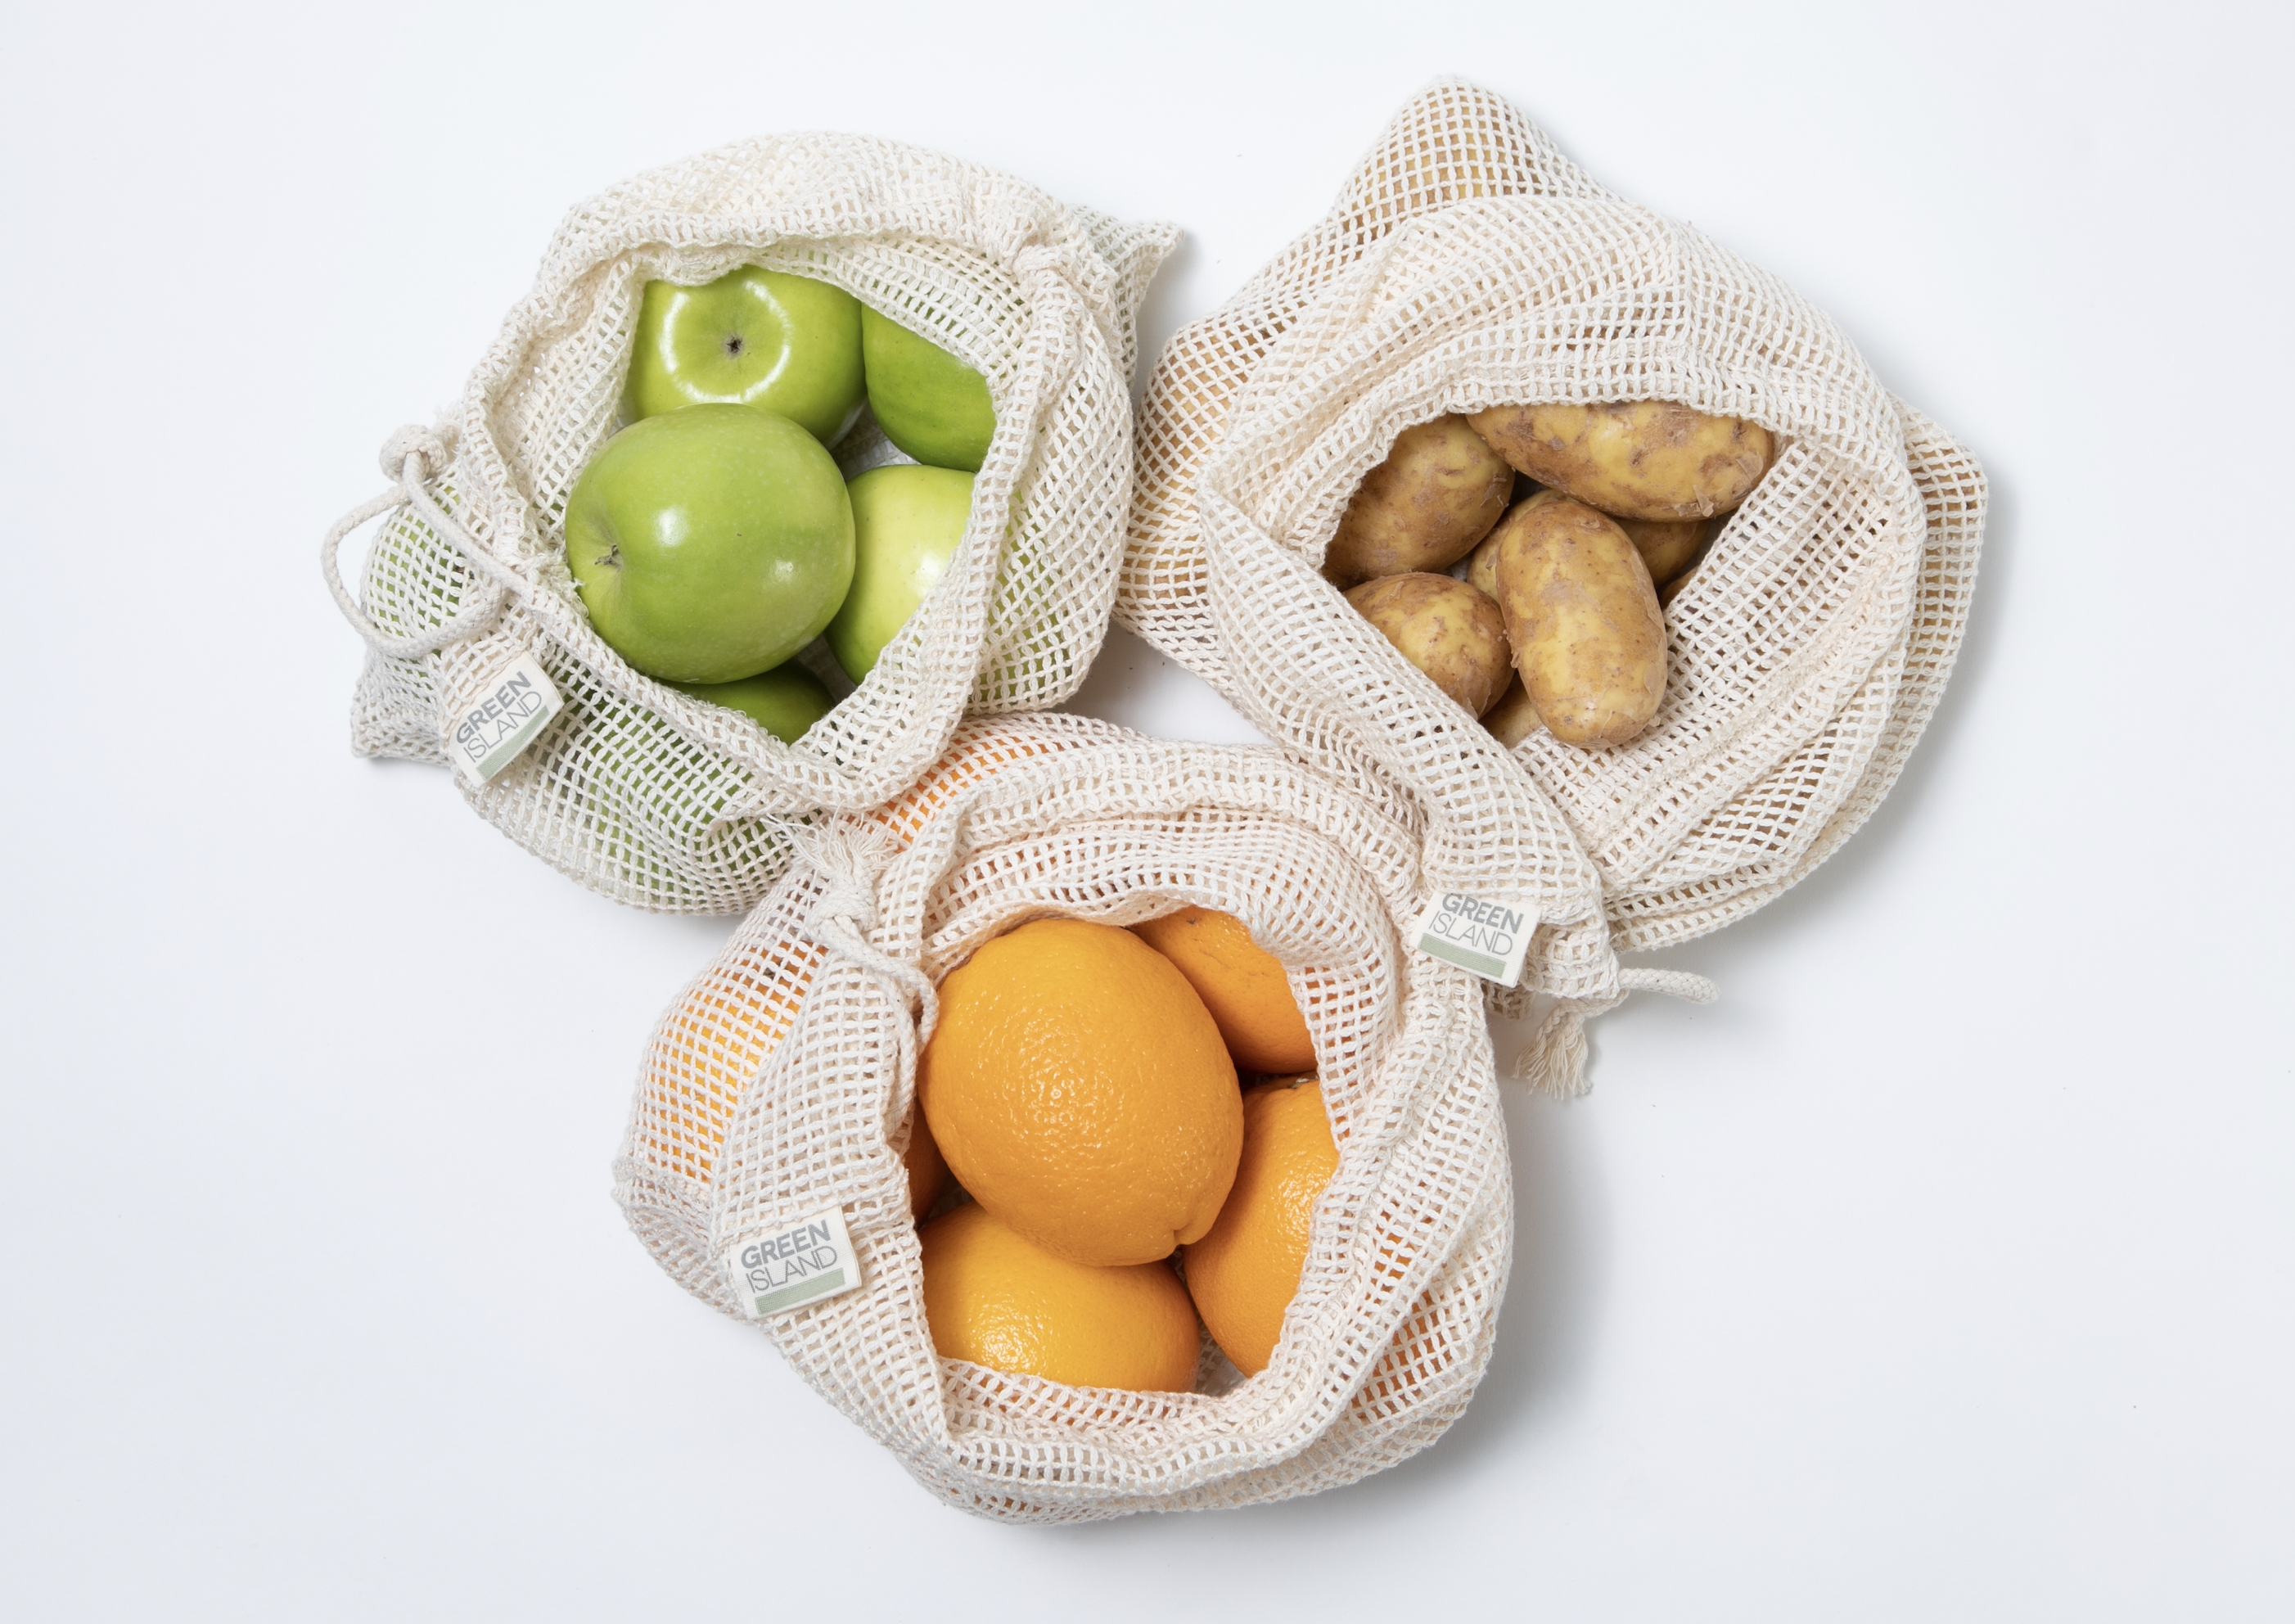 Organic cotton fruit and veg bags Tabitha Eve at Wearth London